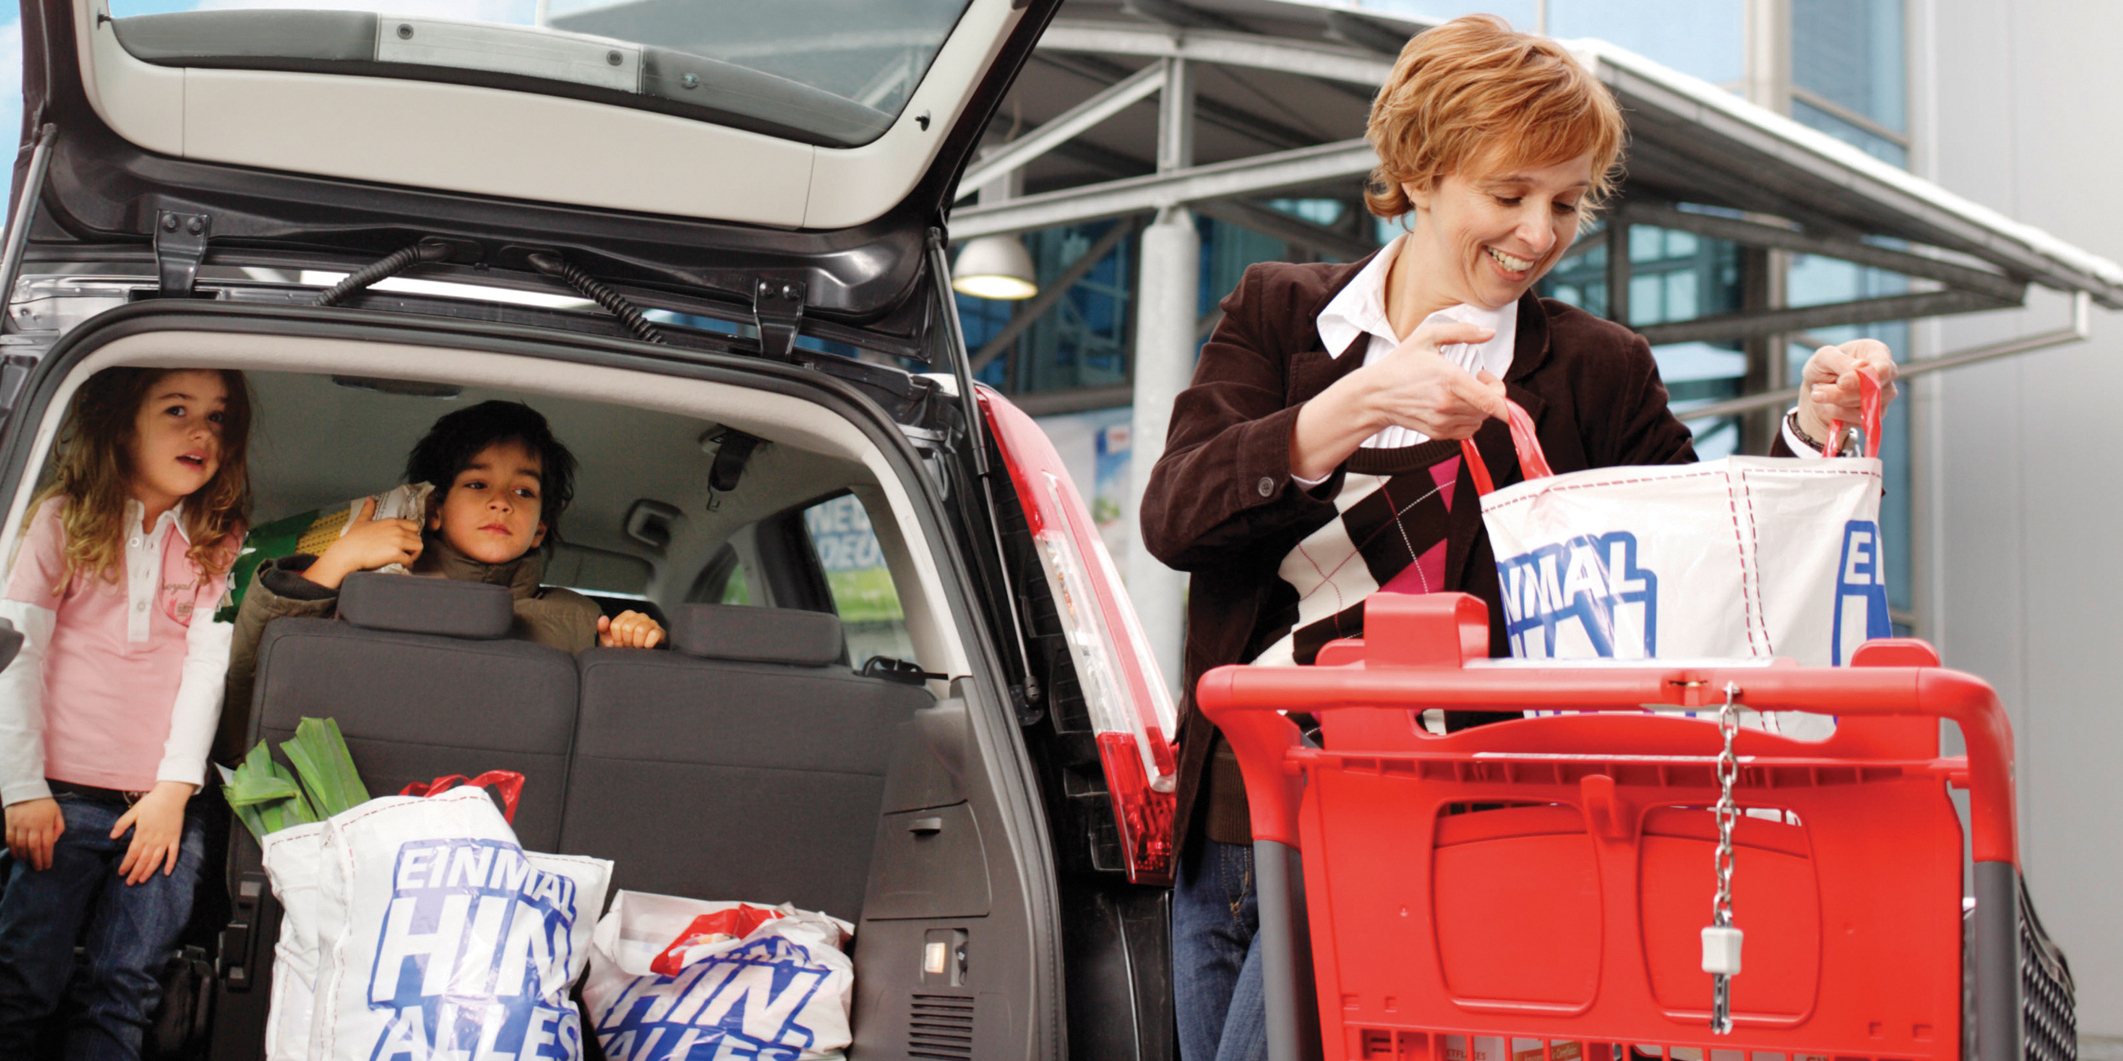 Customer with Kids loading Purchases into Car